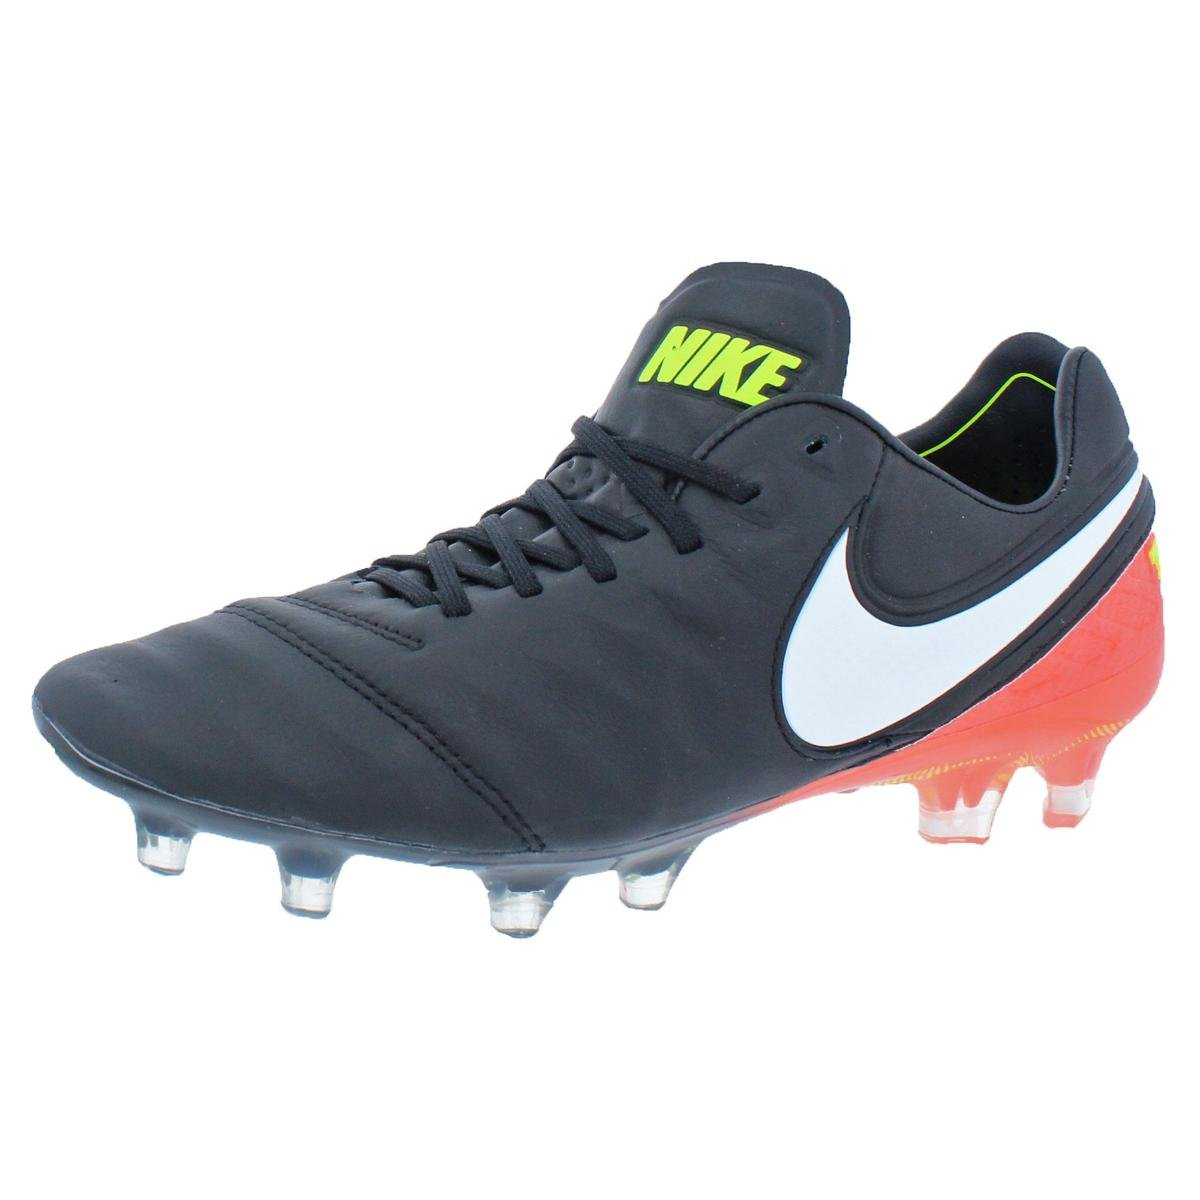 brand new 0dcc2 f609a NIKE Mens Tiempo Leather Cleats Soccer Shoes Black 6.5 Medium (D)